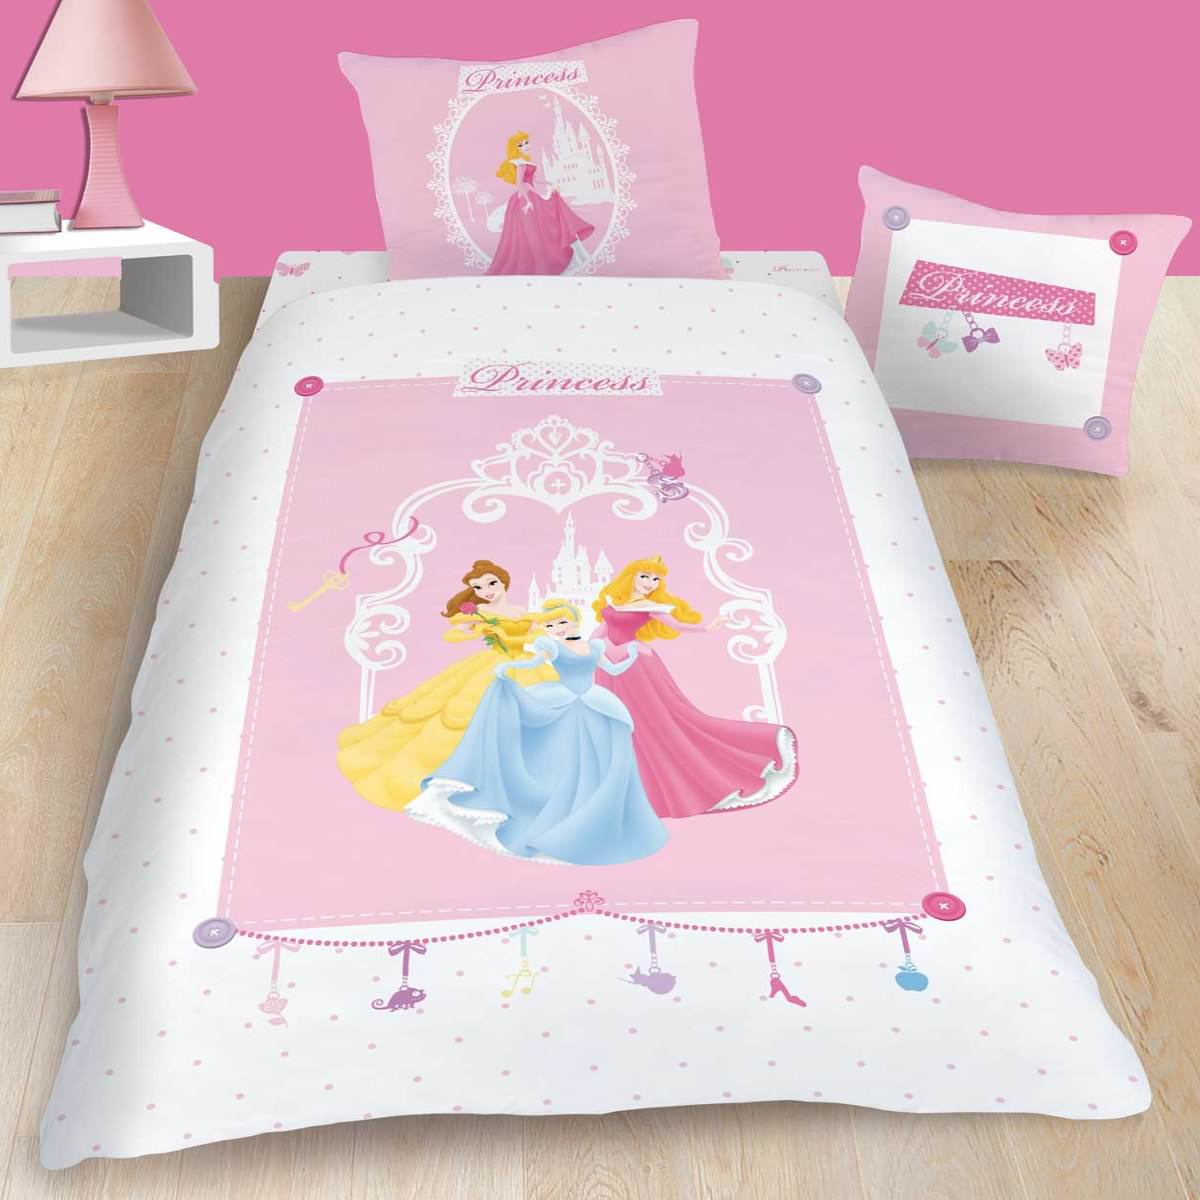 disney princesse parure de lit housse couette 140 x 200 cm charms cti. Black Bedroom Furniture Sets. Home Design Ideas